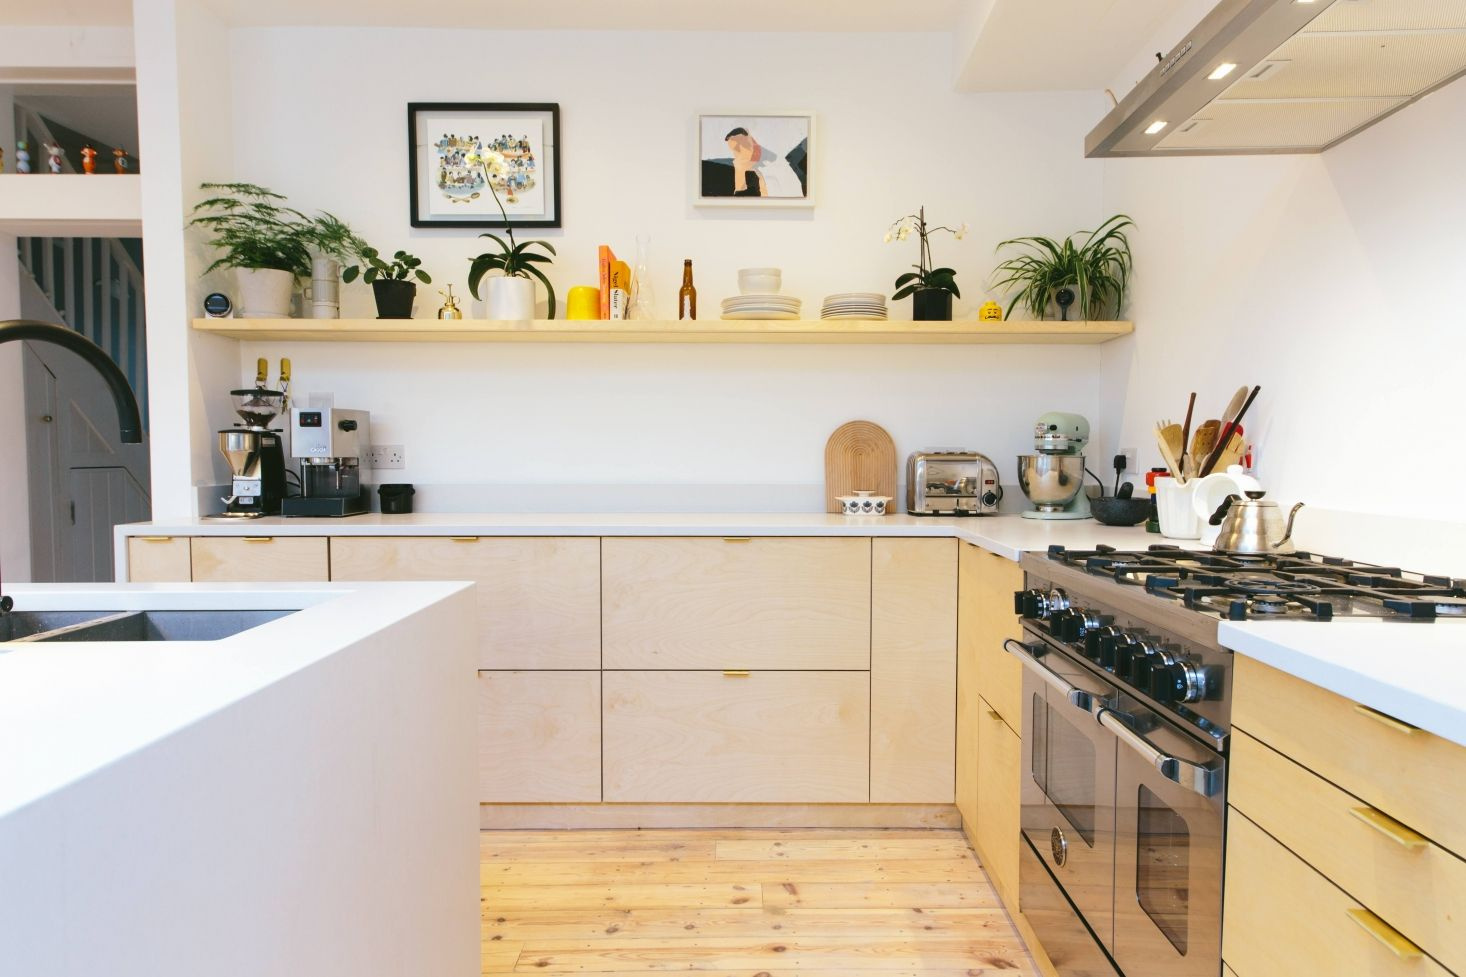 Plykea In London Stylish Plywood Cabinet Fronts And Worktops For Ikea Kitchens Remodelista Plywood Kitchen Ikea Metod Kitchen Kitchen Remodel